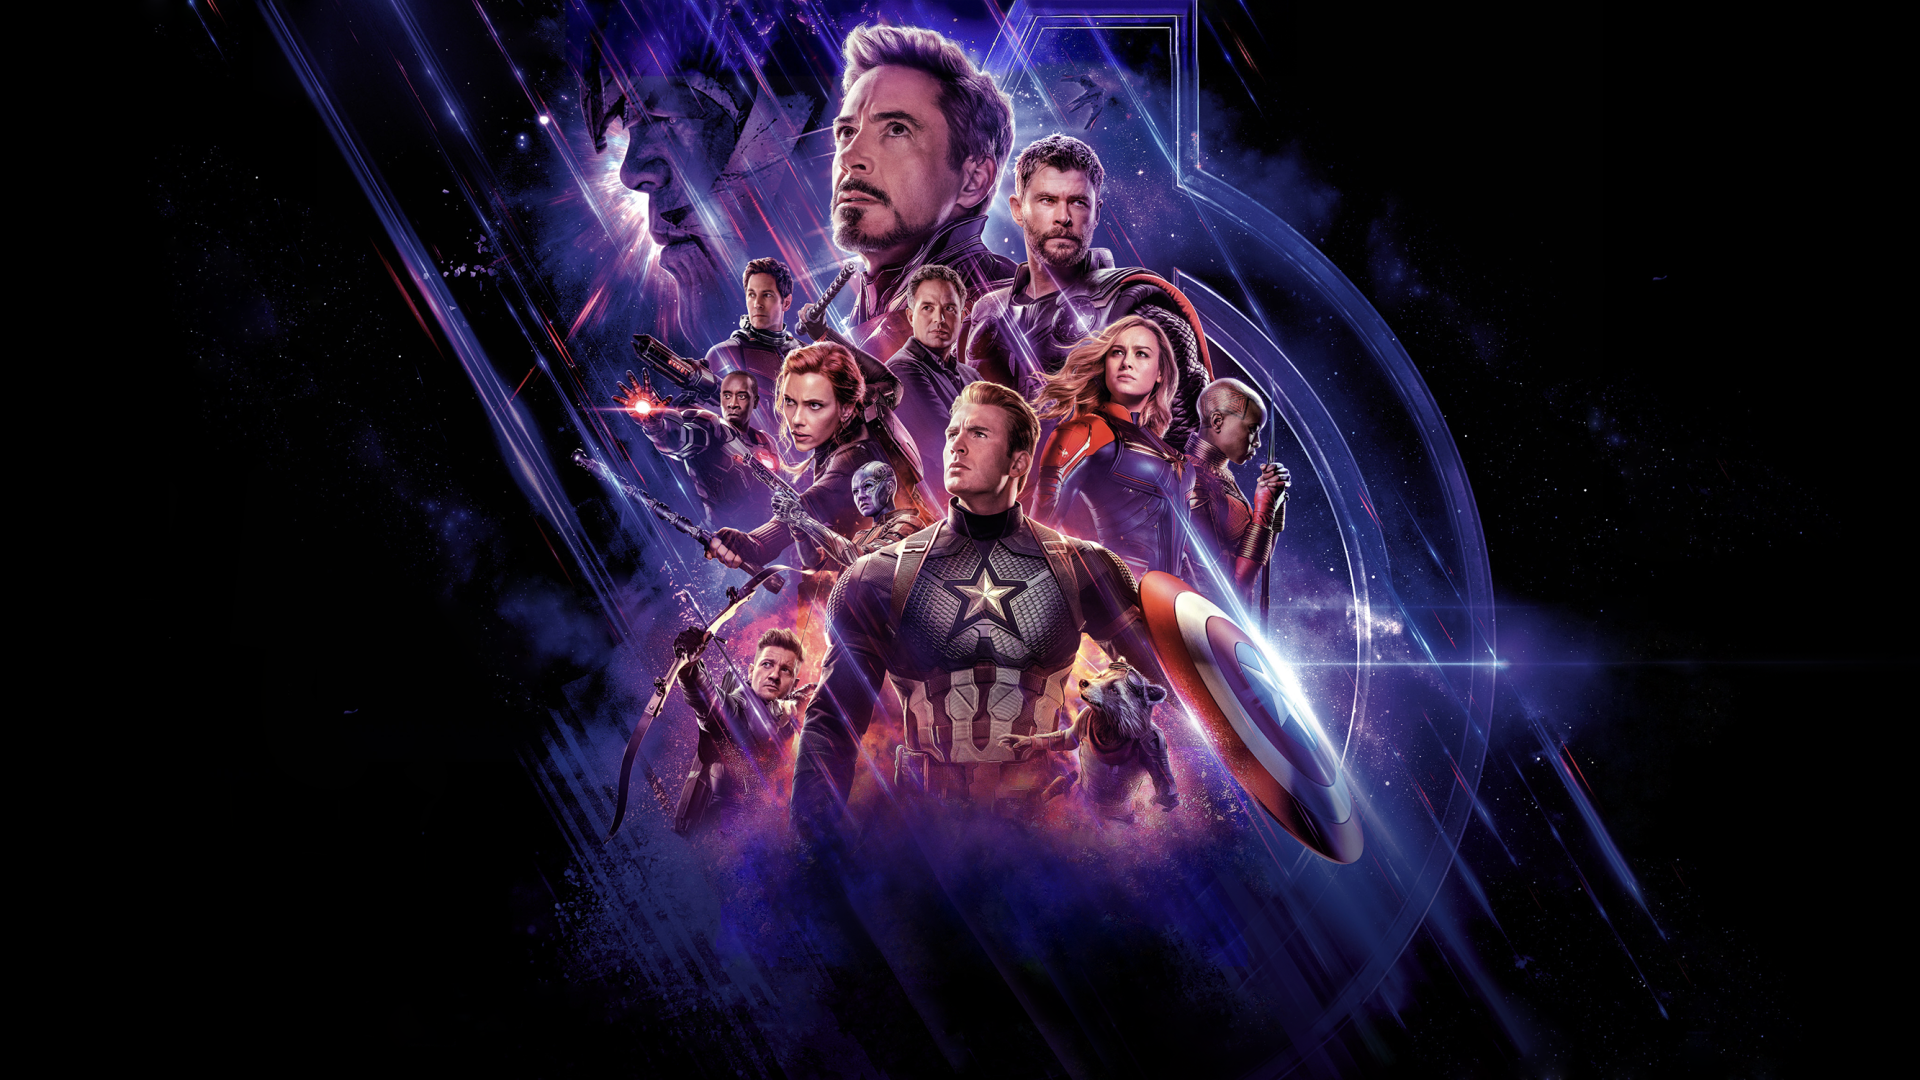 207 Avengers Endgame HD Wallpapers Background Images   Wallpaper 1920x1080